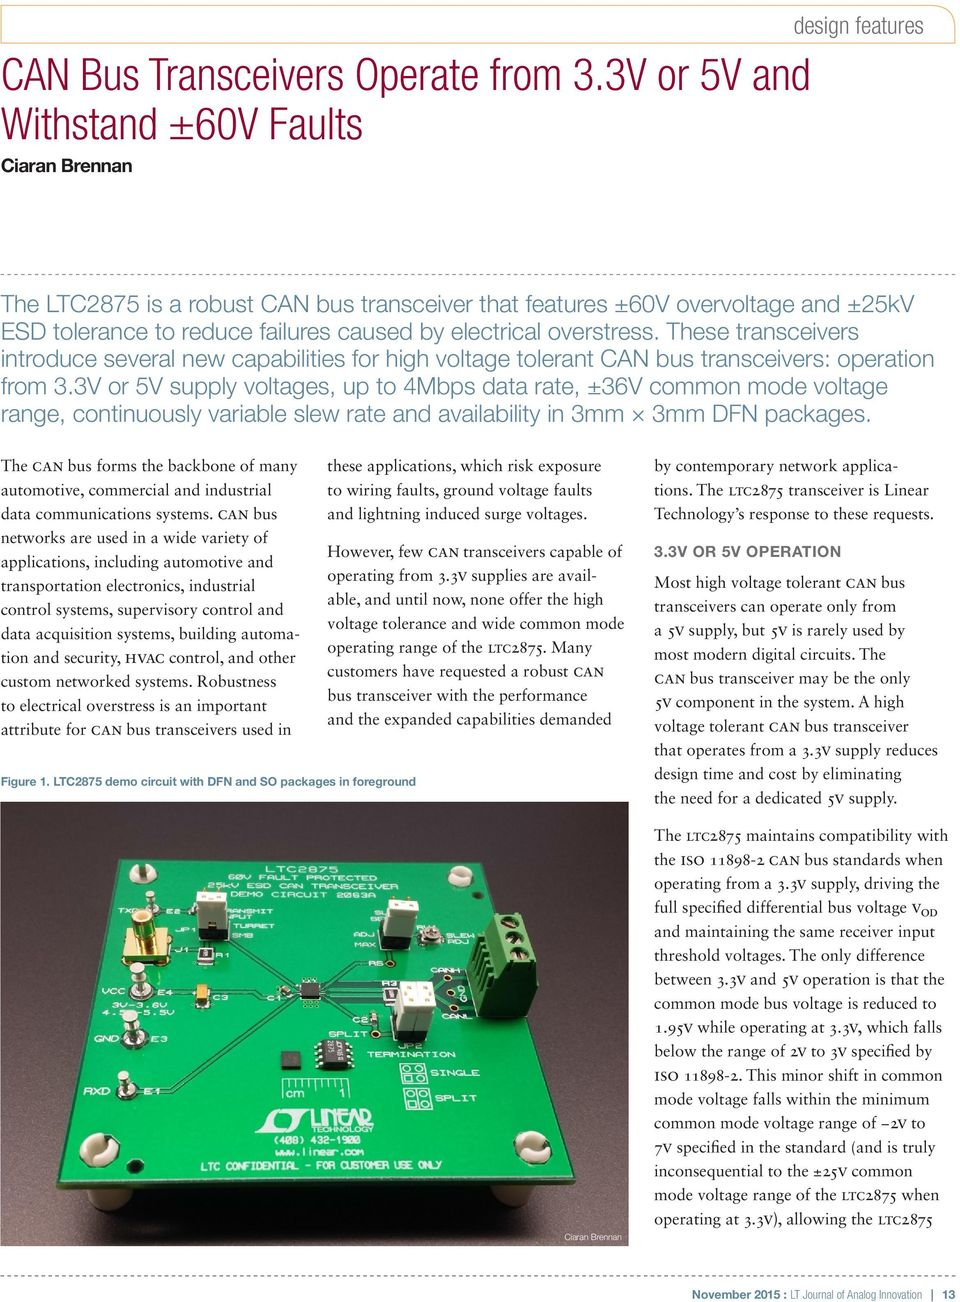 electrical overstress. These transceivers introduce several new capabilities for high voltage tolerant CAN bus transceivers: operation from 3.